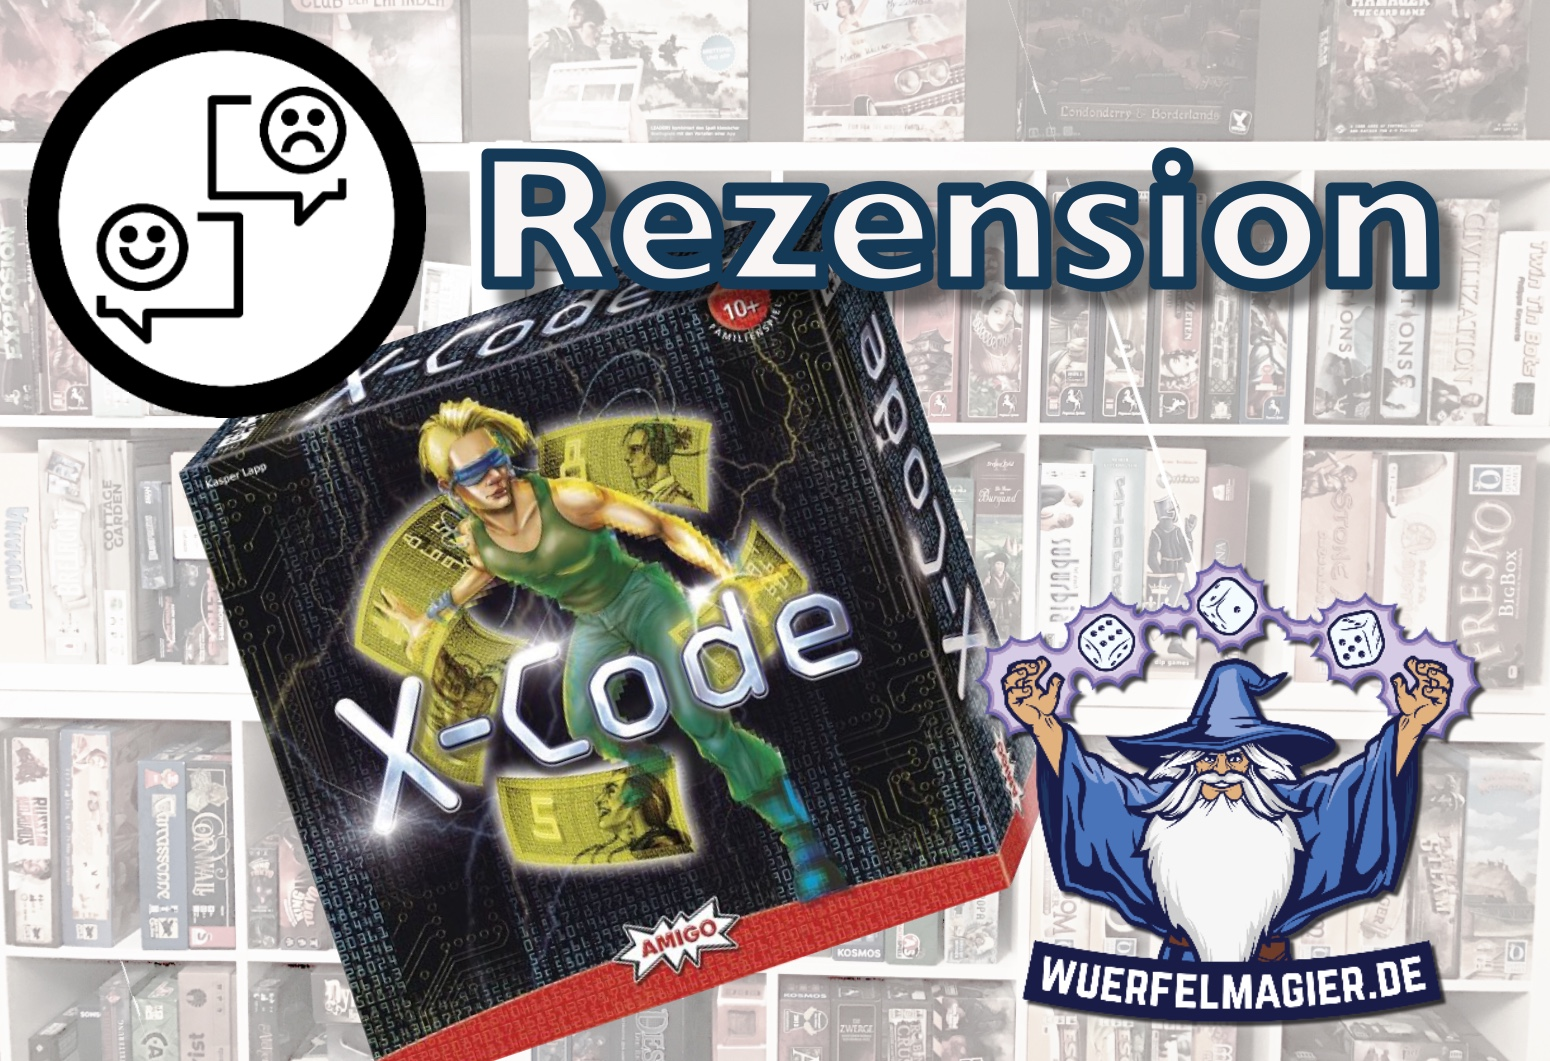 Rezension X-Code Amigo